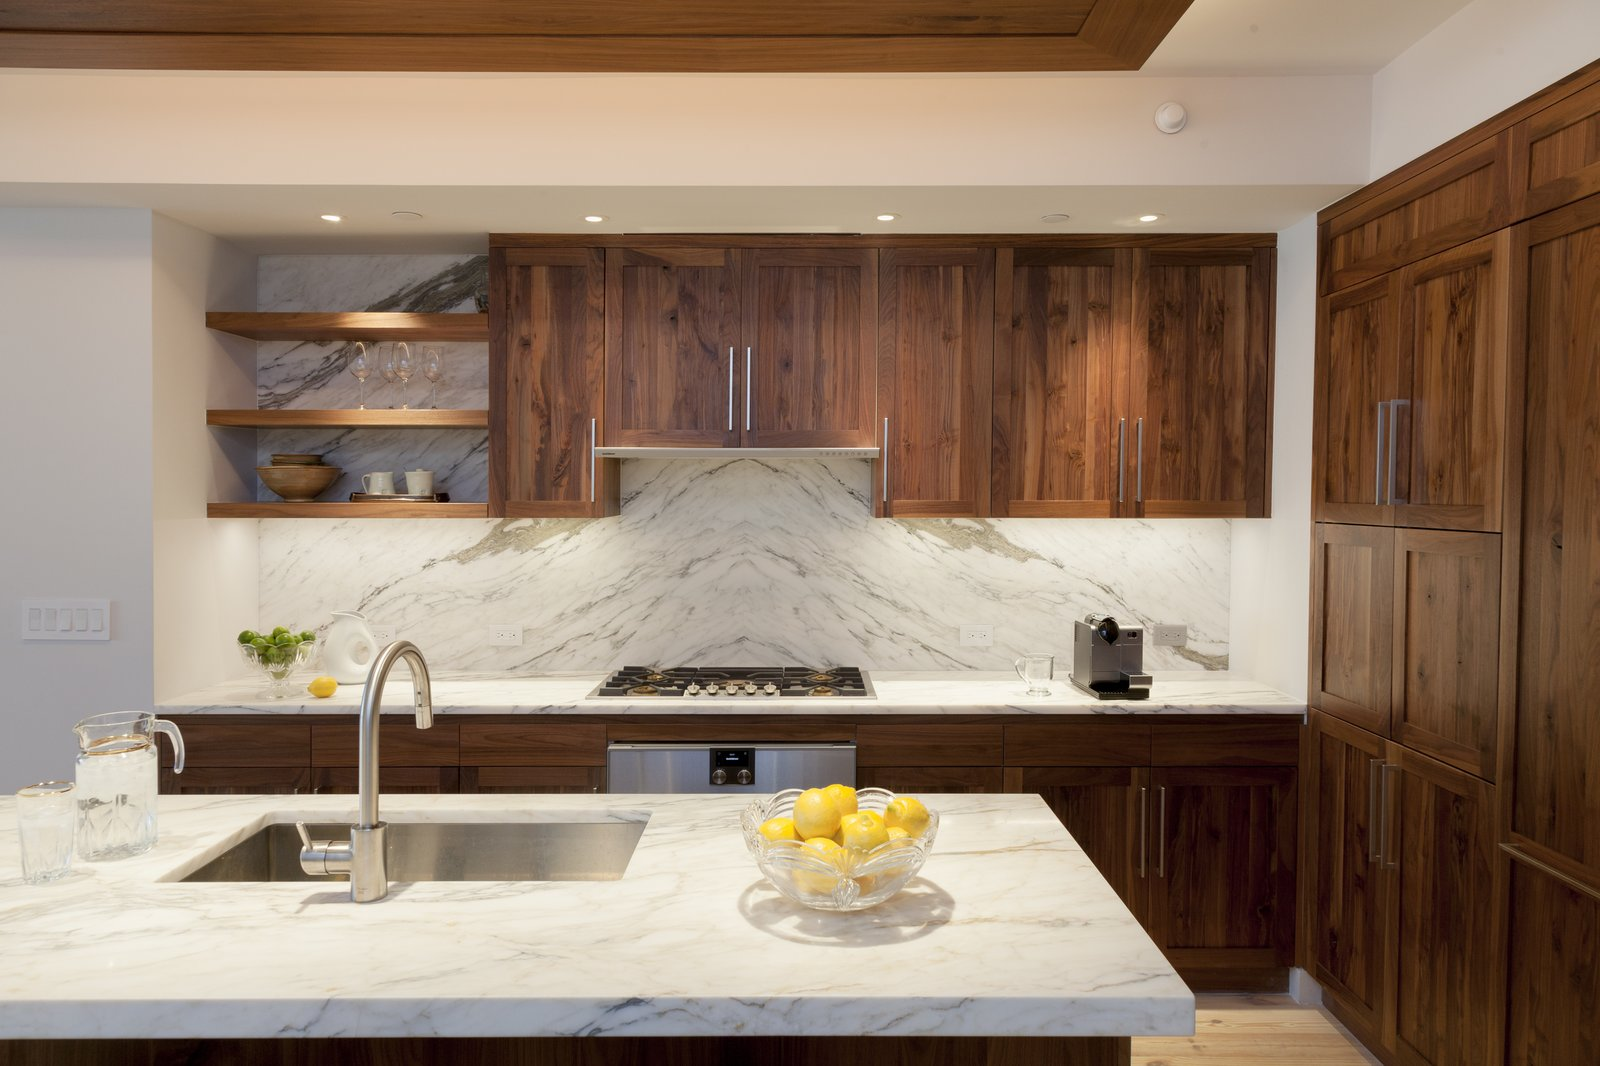 Kitchen, Marble, Wood, Stone Slab, Ceiling, Pendant, Light Hardwood, Accent, Recessed, Refrigerator, Wall Oven, Cooktops, Range, Range Hood, Wine Cooler, Ice Maker, Dishwasher, Microwave, and Undermount Walnut and book-matched  Calcutta kitchen  Best Kitchen Wall Oven Wood Undermount Recessed Range Photos from Pierhouse At Brooklyn Bridge Park Condo